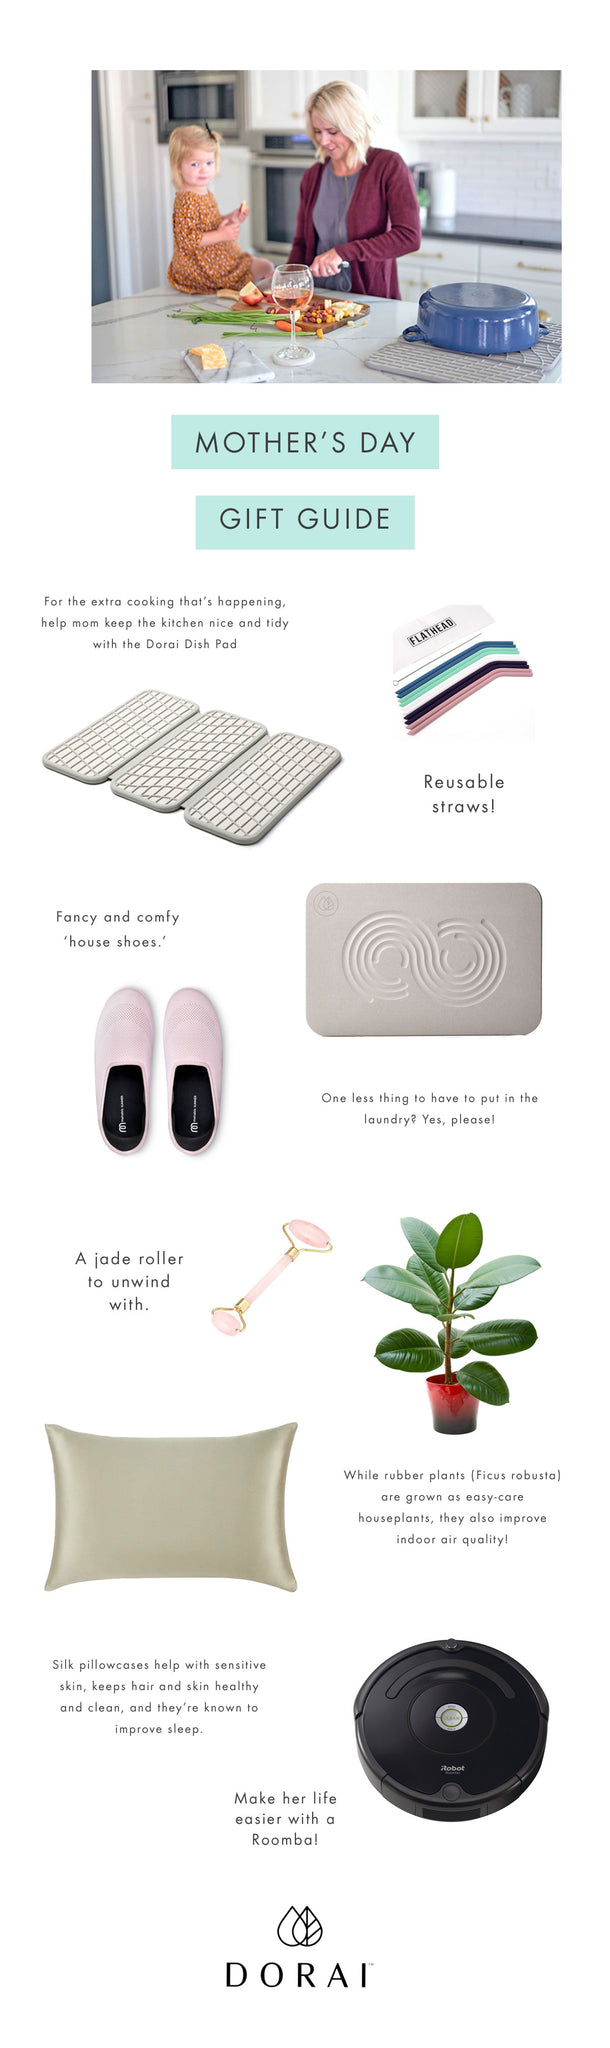 Dorai Home Mother's Day gift guide